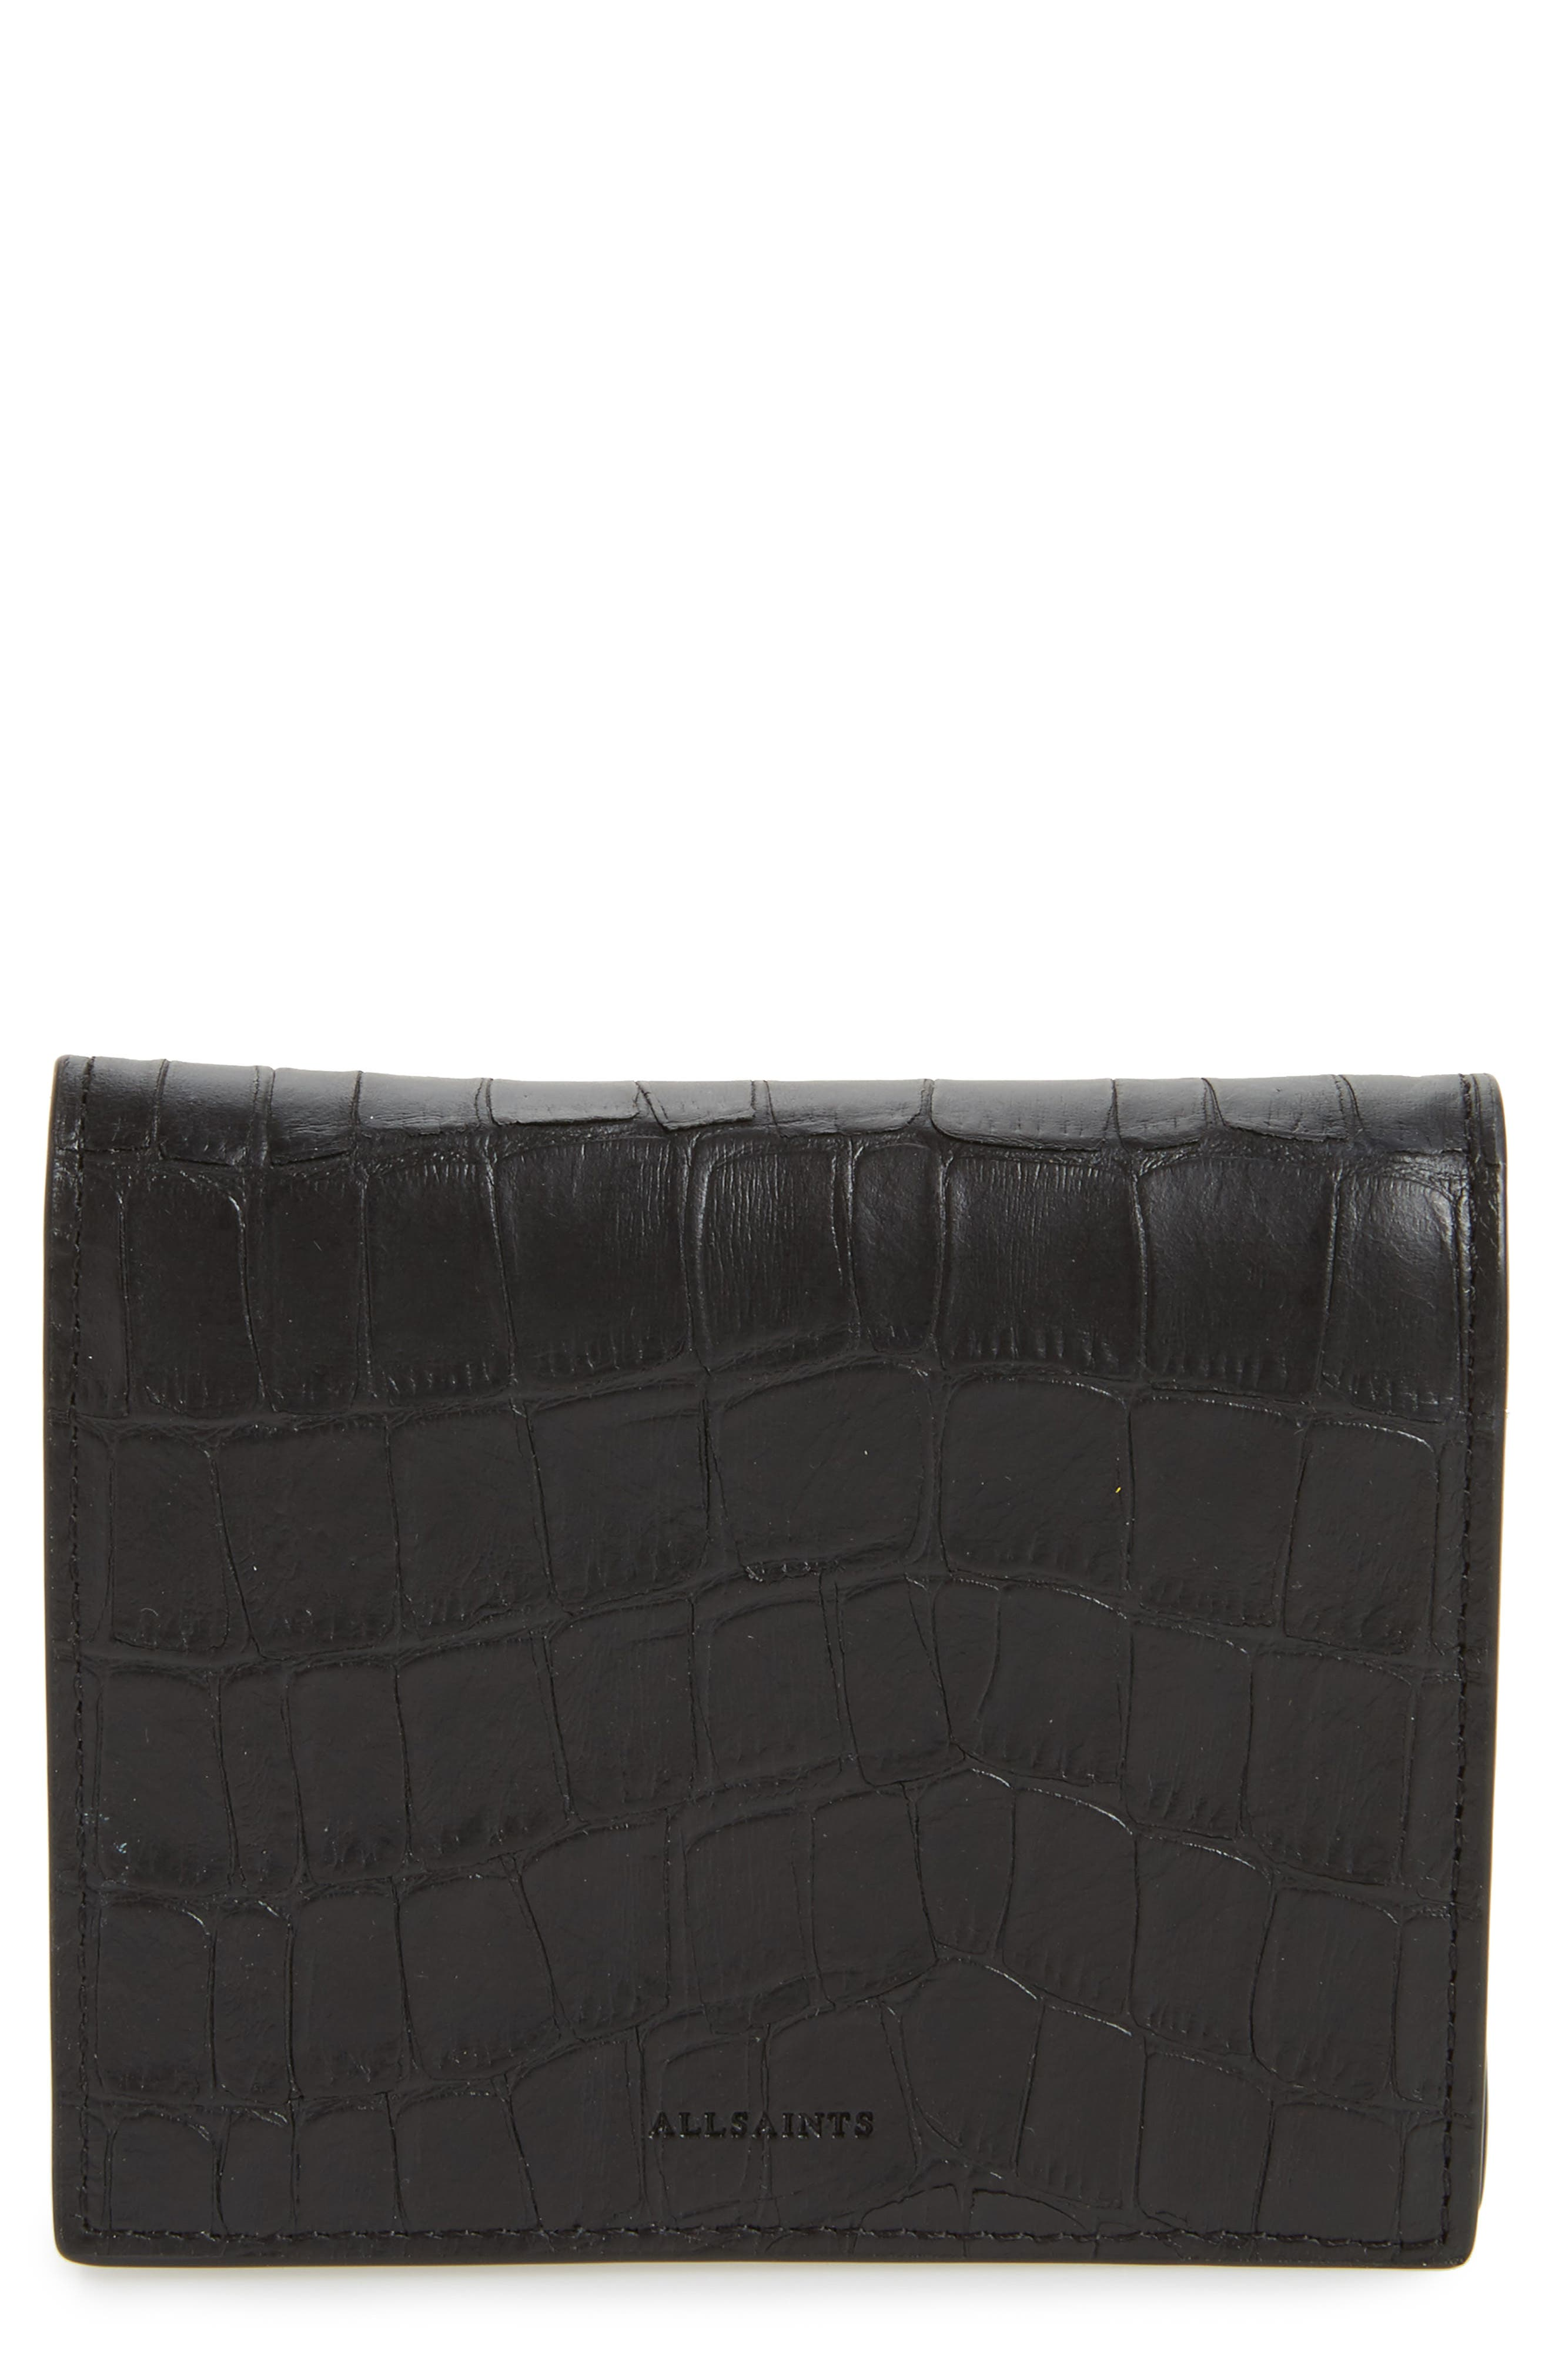 Main Image - ALLSAINTS Small Keel Croc Embossed Leather Wallet